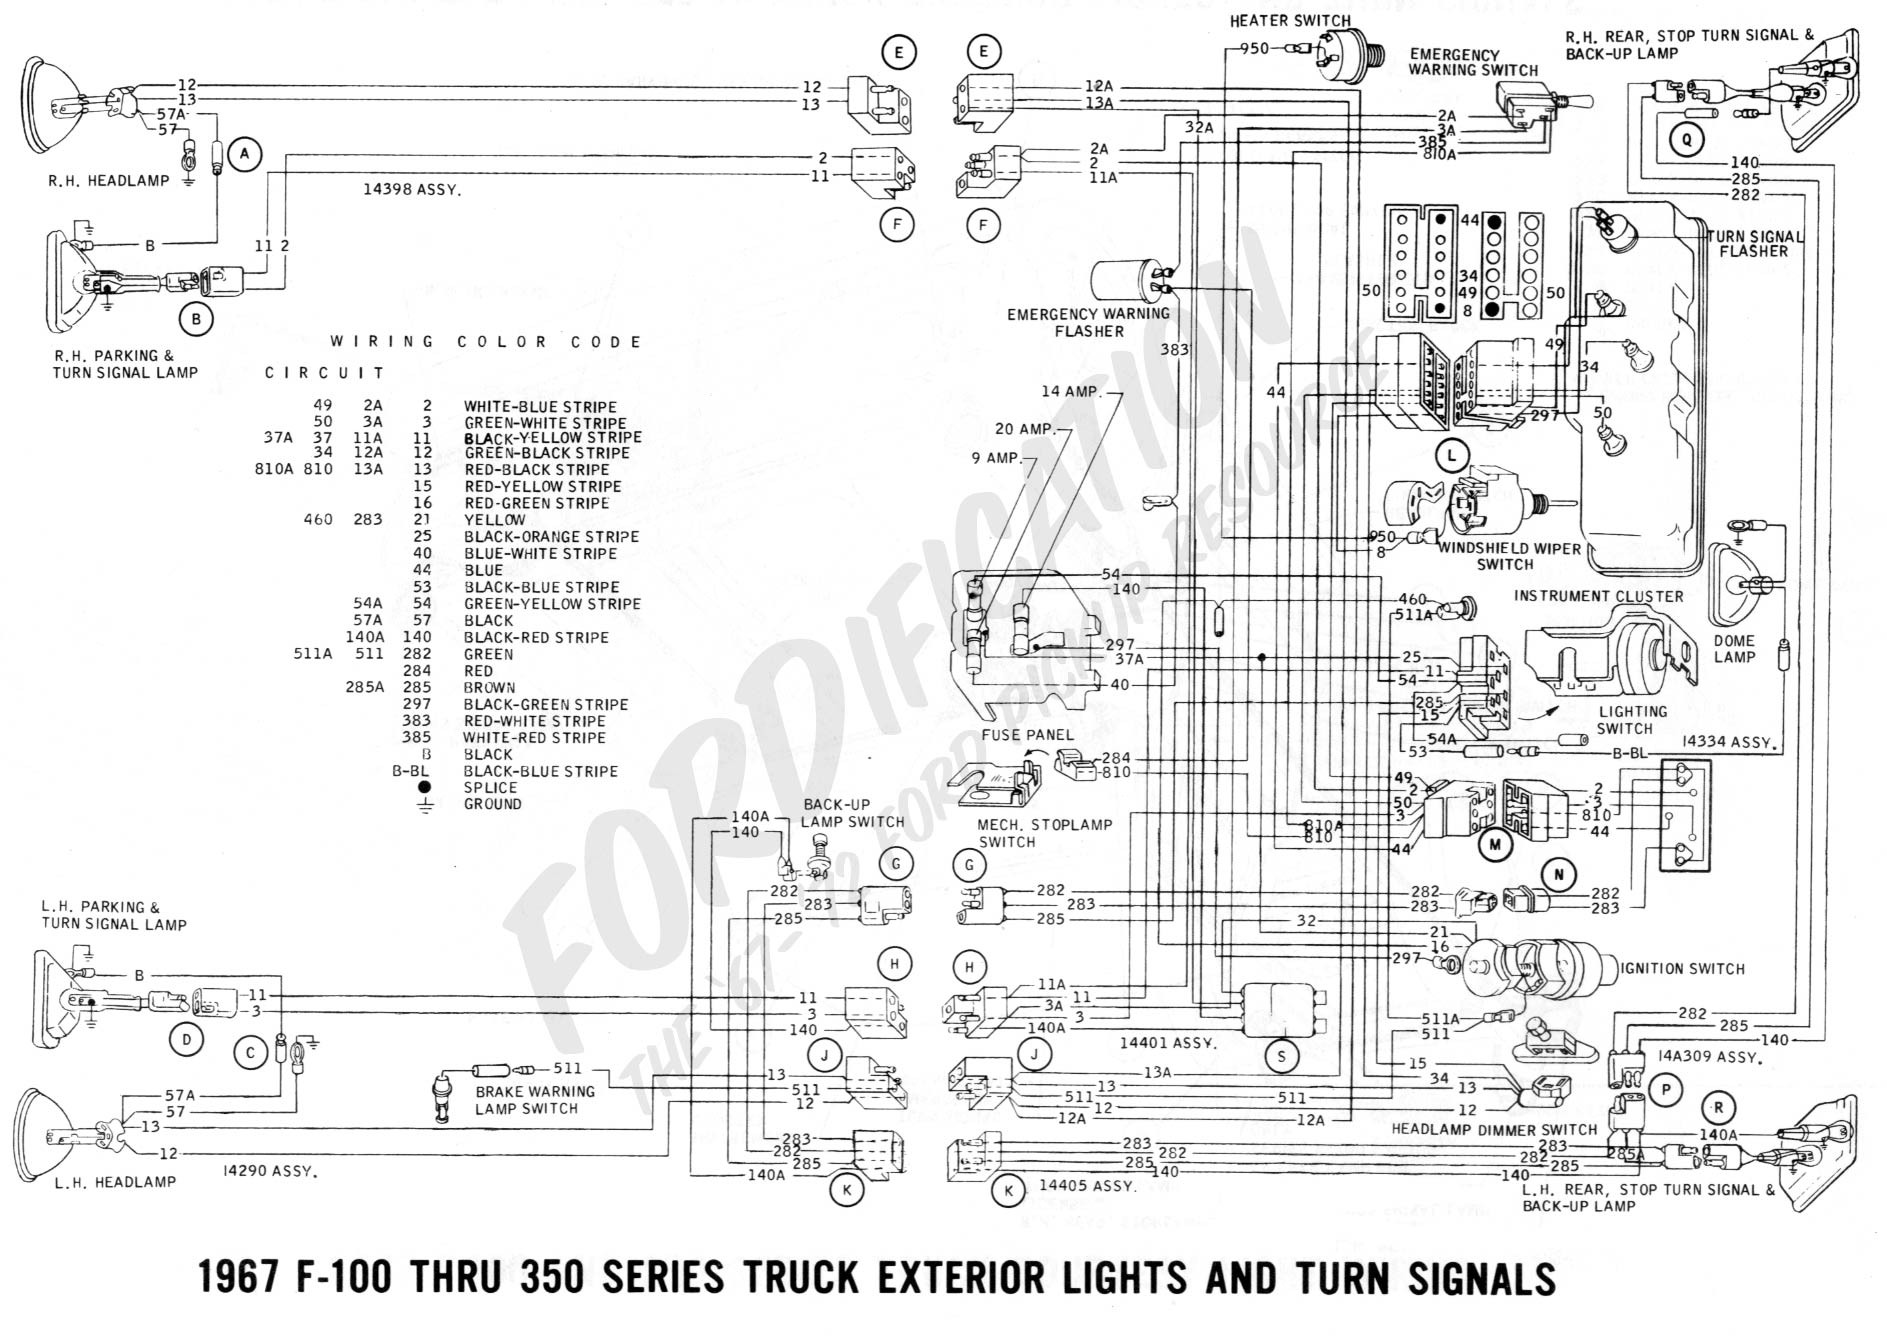 1970 Ford 600 Wiring Diagram | Wiring Diagram  Ford Bronco Wiring Diagram on 1987 ford ranger fuel system, 1987 ford f700 wiring diagram, 1997 ford f-350 wiring diagram, 1999 ford ranger ignition wiring diagram, ford bronco aftermarket wiring diagram, 1987 ford f-350 wiring diagram, 1987 ford e150 wiring diagram, 1987 ford f600 wiring diagram, 85 ford bronco wiring diagram, 2000 ford bronco wiring diagram, 2003 ford excursion wiring diagram, 1987 ford e350 wiring diagram, 1992 ford bronco wiring diagram, 1987 ford f150 fuel system diagram, 86 ford bronco 2 wiring diagram, 1987 ford bronco firing order, 1975 ford bronco wiring diagram, 1997 ford crown victoria wiring diagram, 2003 ford crown victoria wiring diagram, 1981 ford bronco wiring diagram,